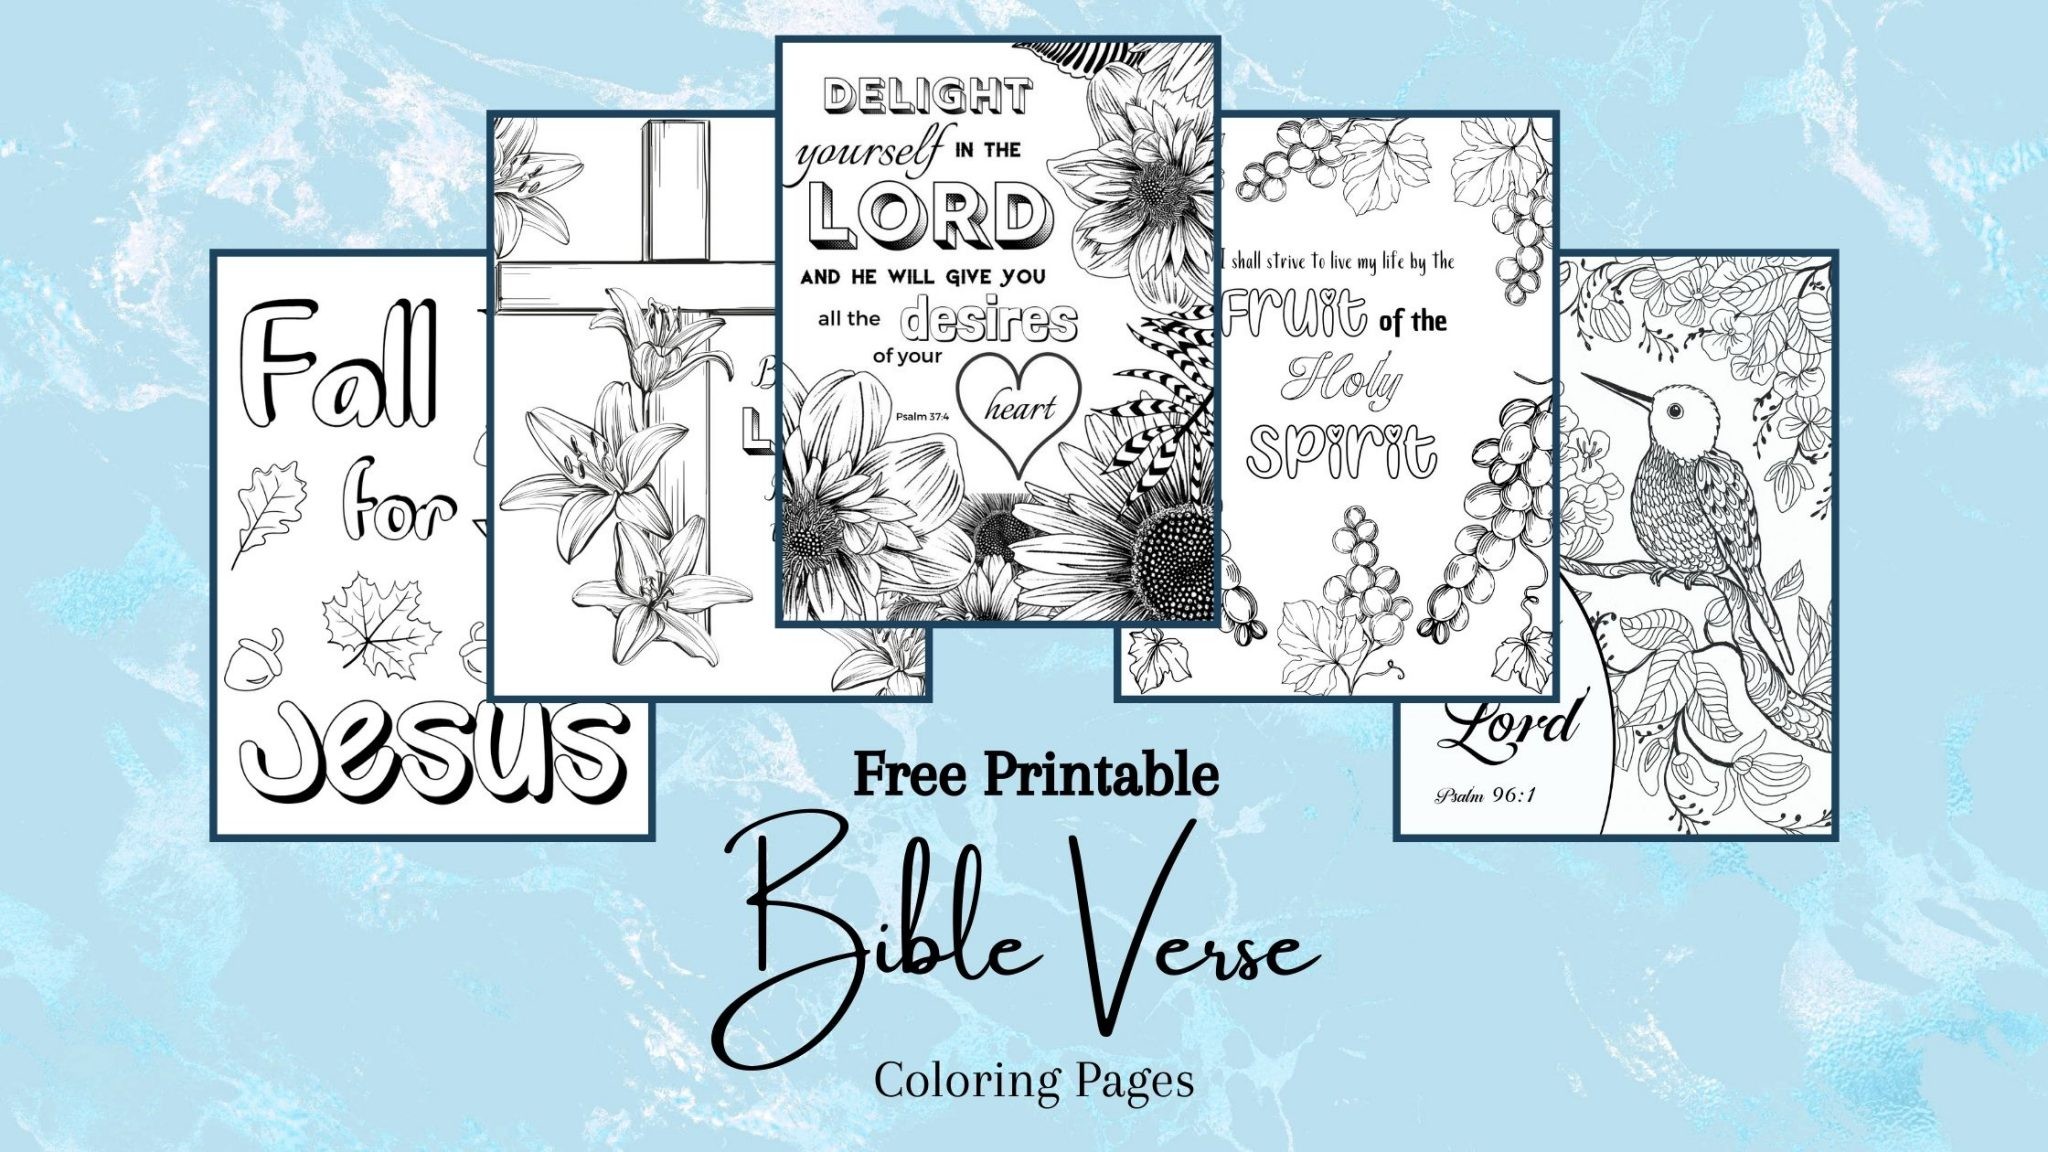 Free Printable Bible Verse Coloring Pages For Women And